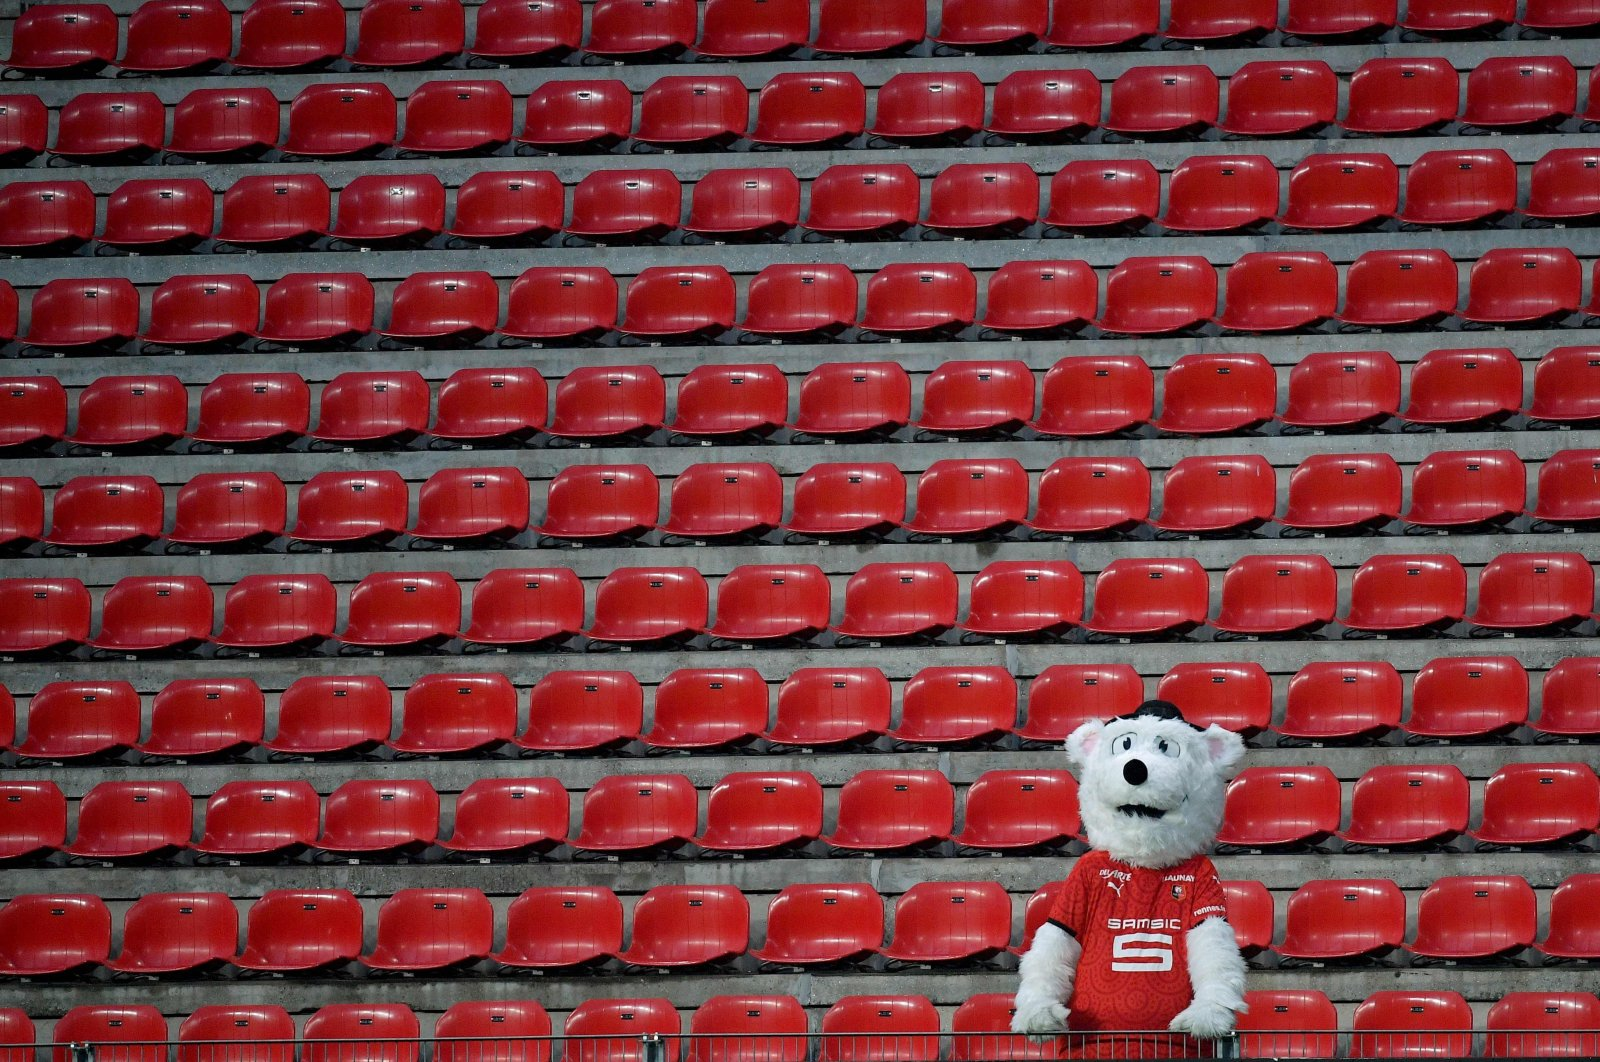 The Rennes' mascot stands in the empty tribunes due to the COVID-19 coronavirus pandemic during the French Ligue 1 football match between Stade Rennais and RC Lens at the Roazhon Park stadium in Rennes, western France, Dec. 5, 2020. (AFP Photo)